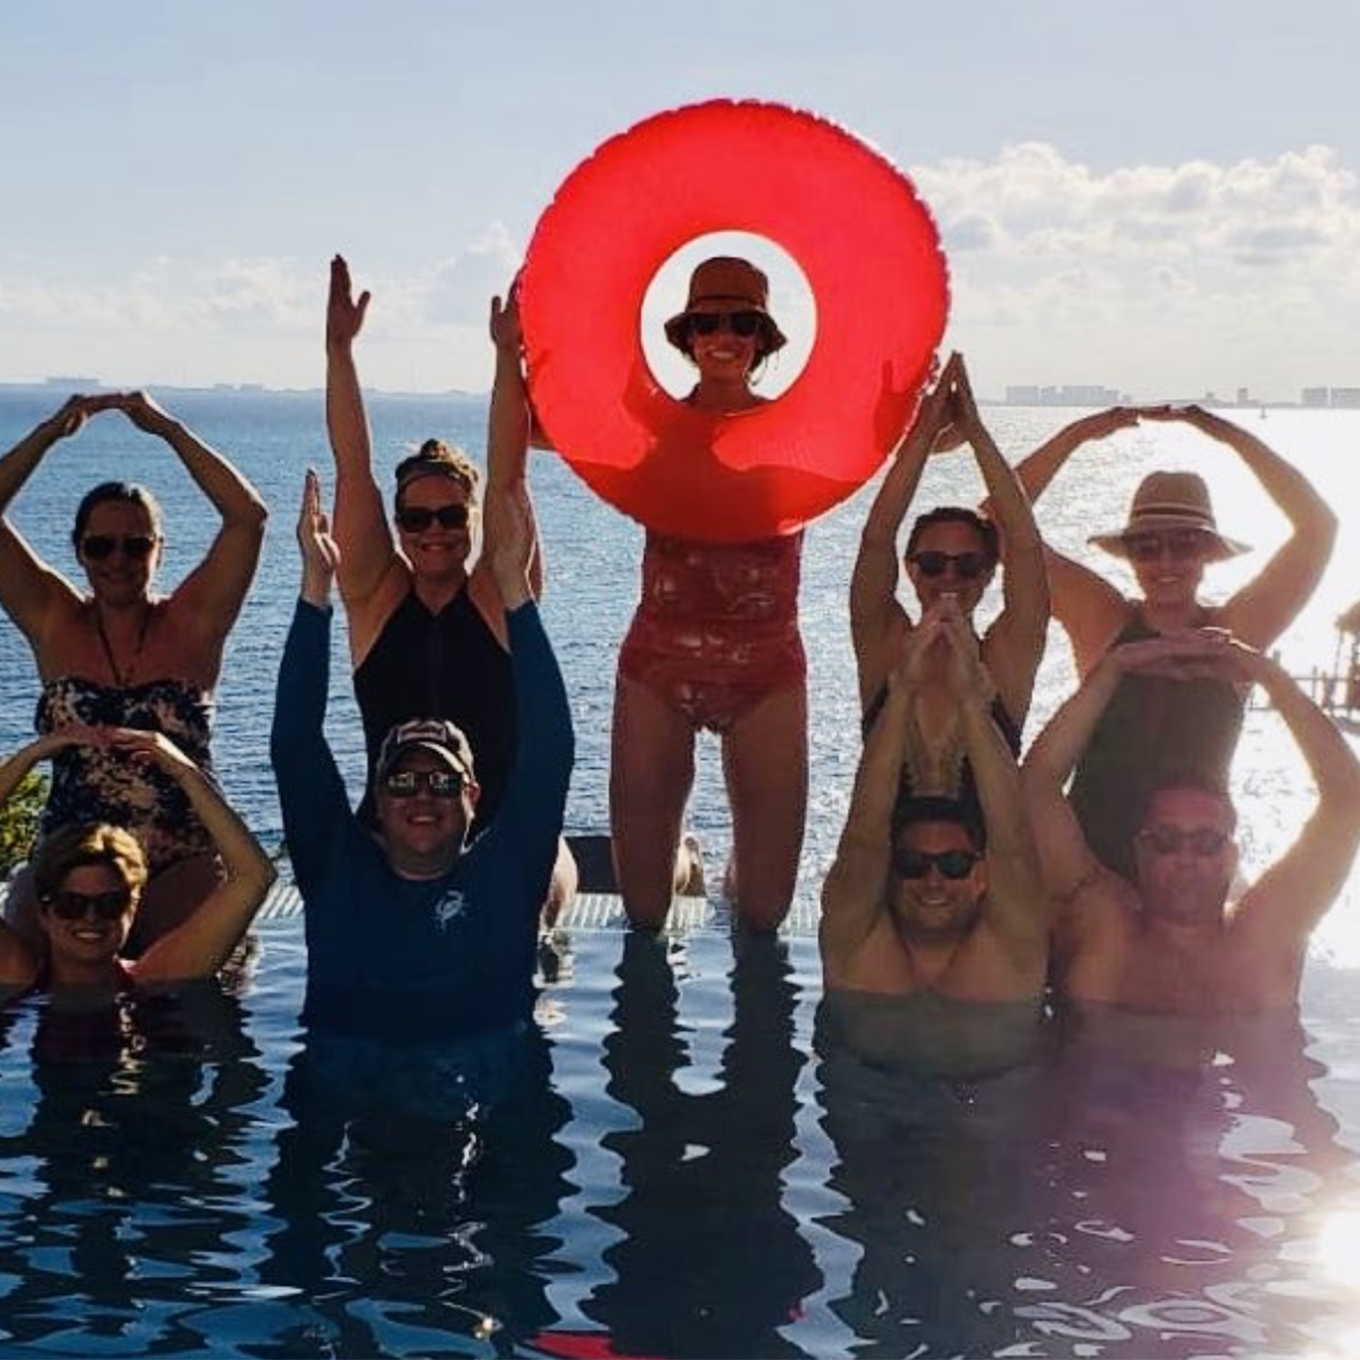 Friends form the O-H-I-O while in a pool in a warm climate